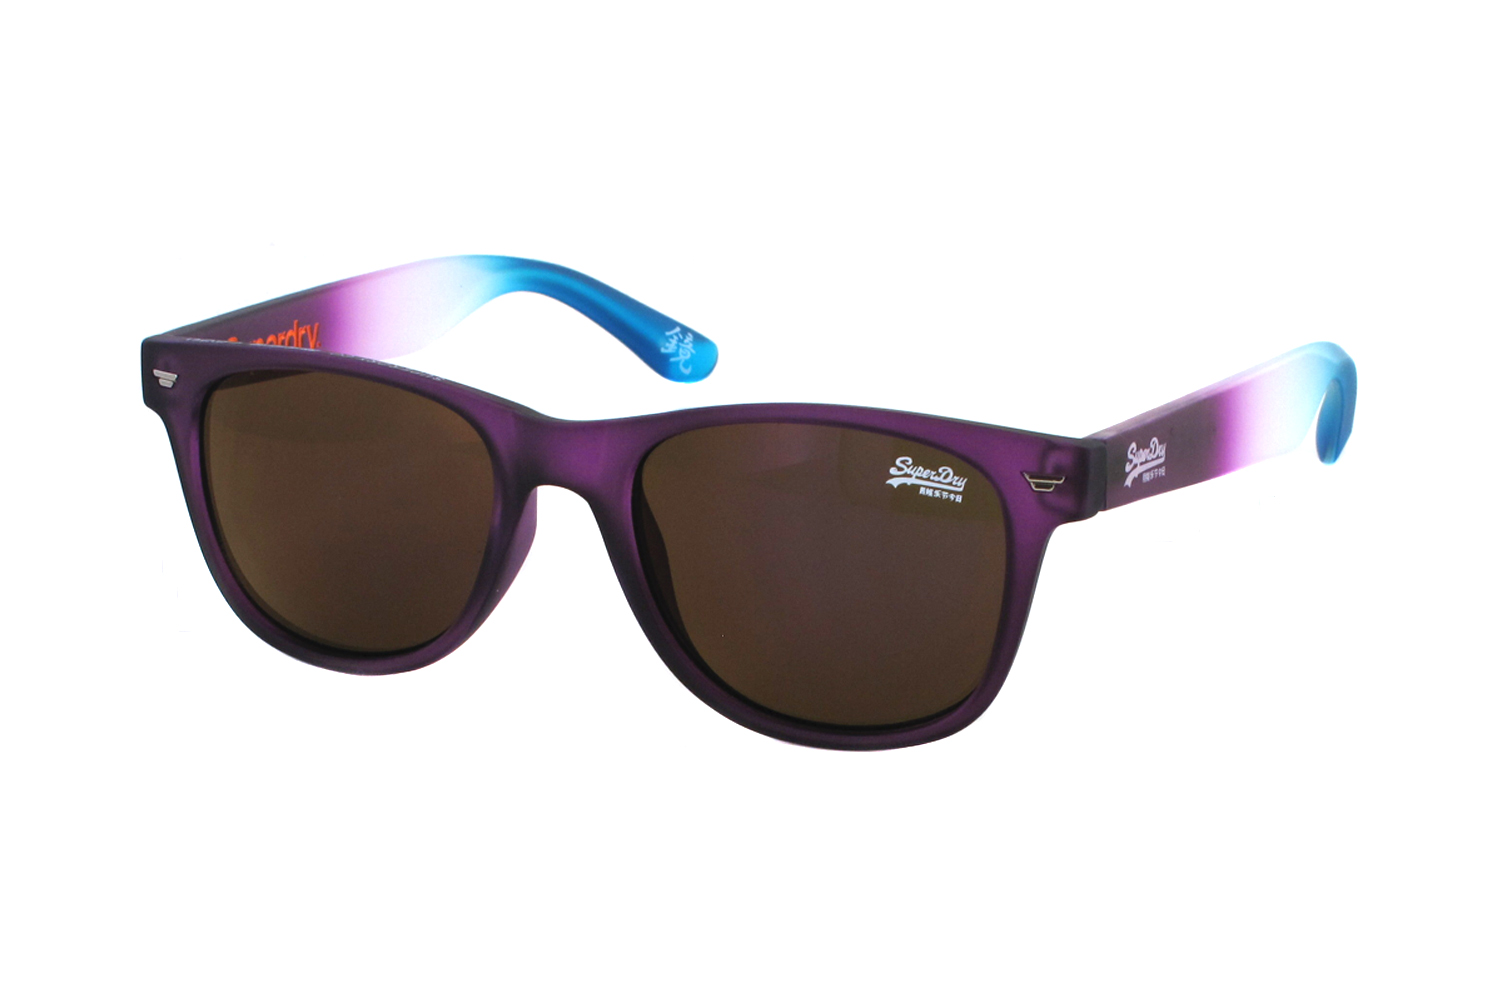 Superdry SDS Superfarer 130 Sonnenbrille in neongelb/blau 50/19 Ug827QKQvE